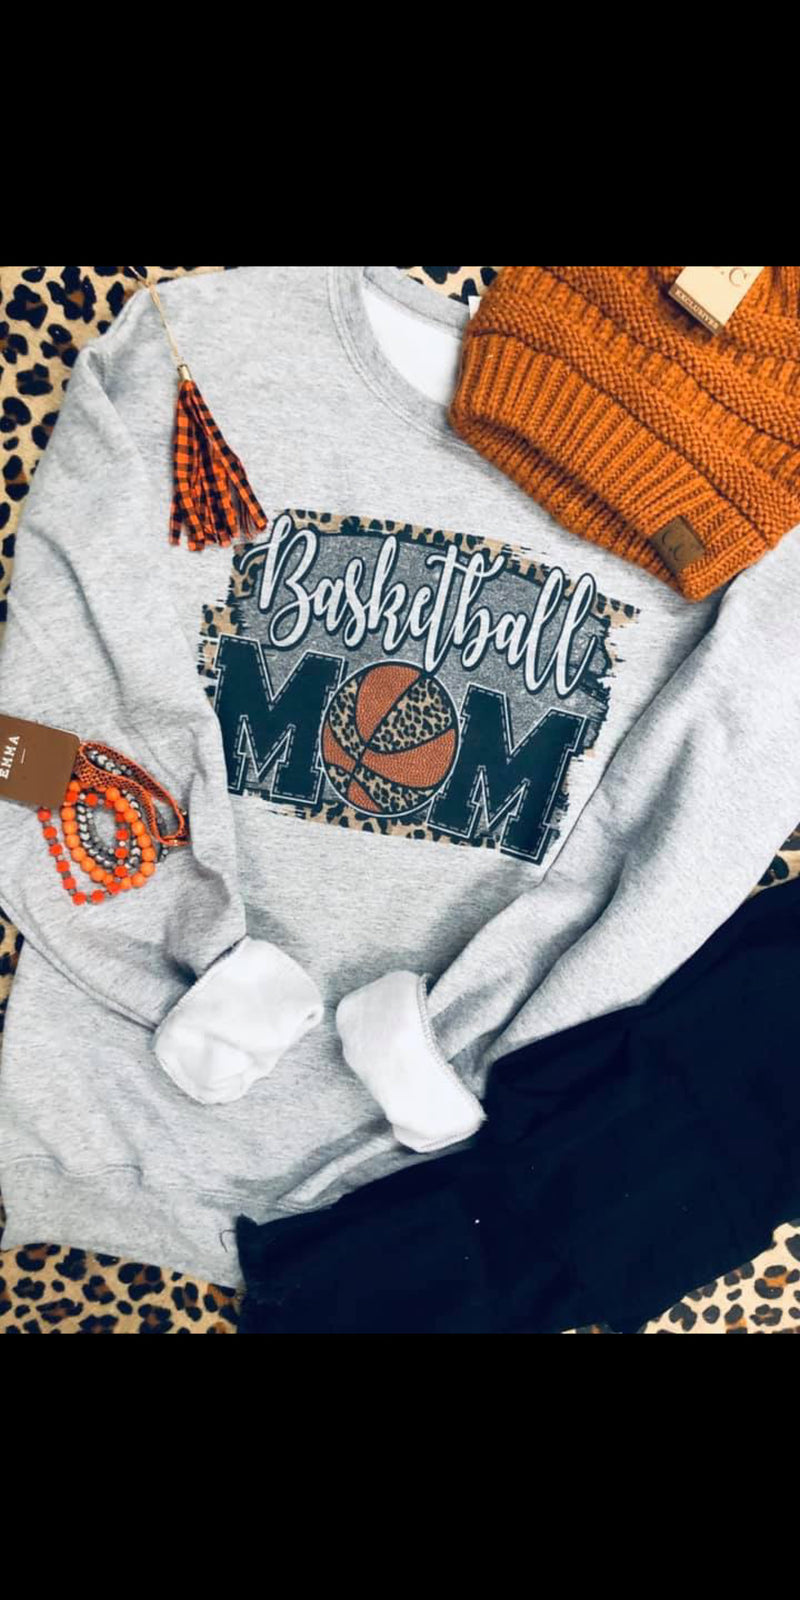 Basketball MOM Sweatshirt - Also in Plus Size